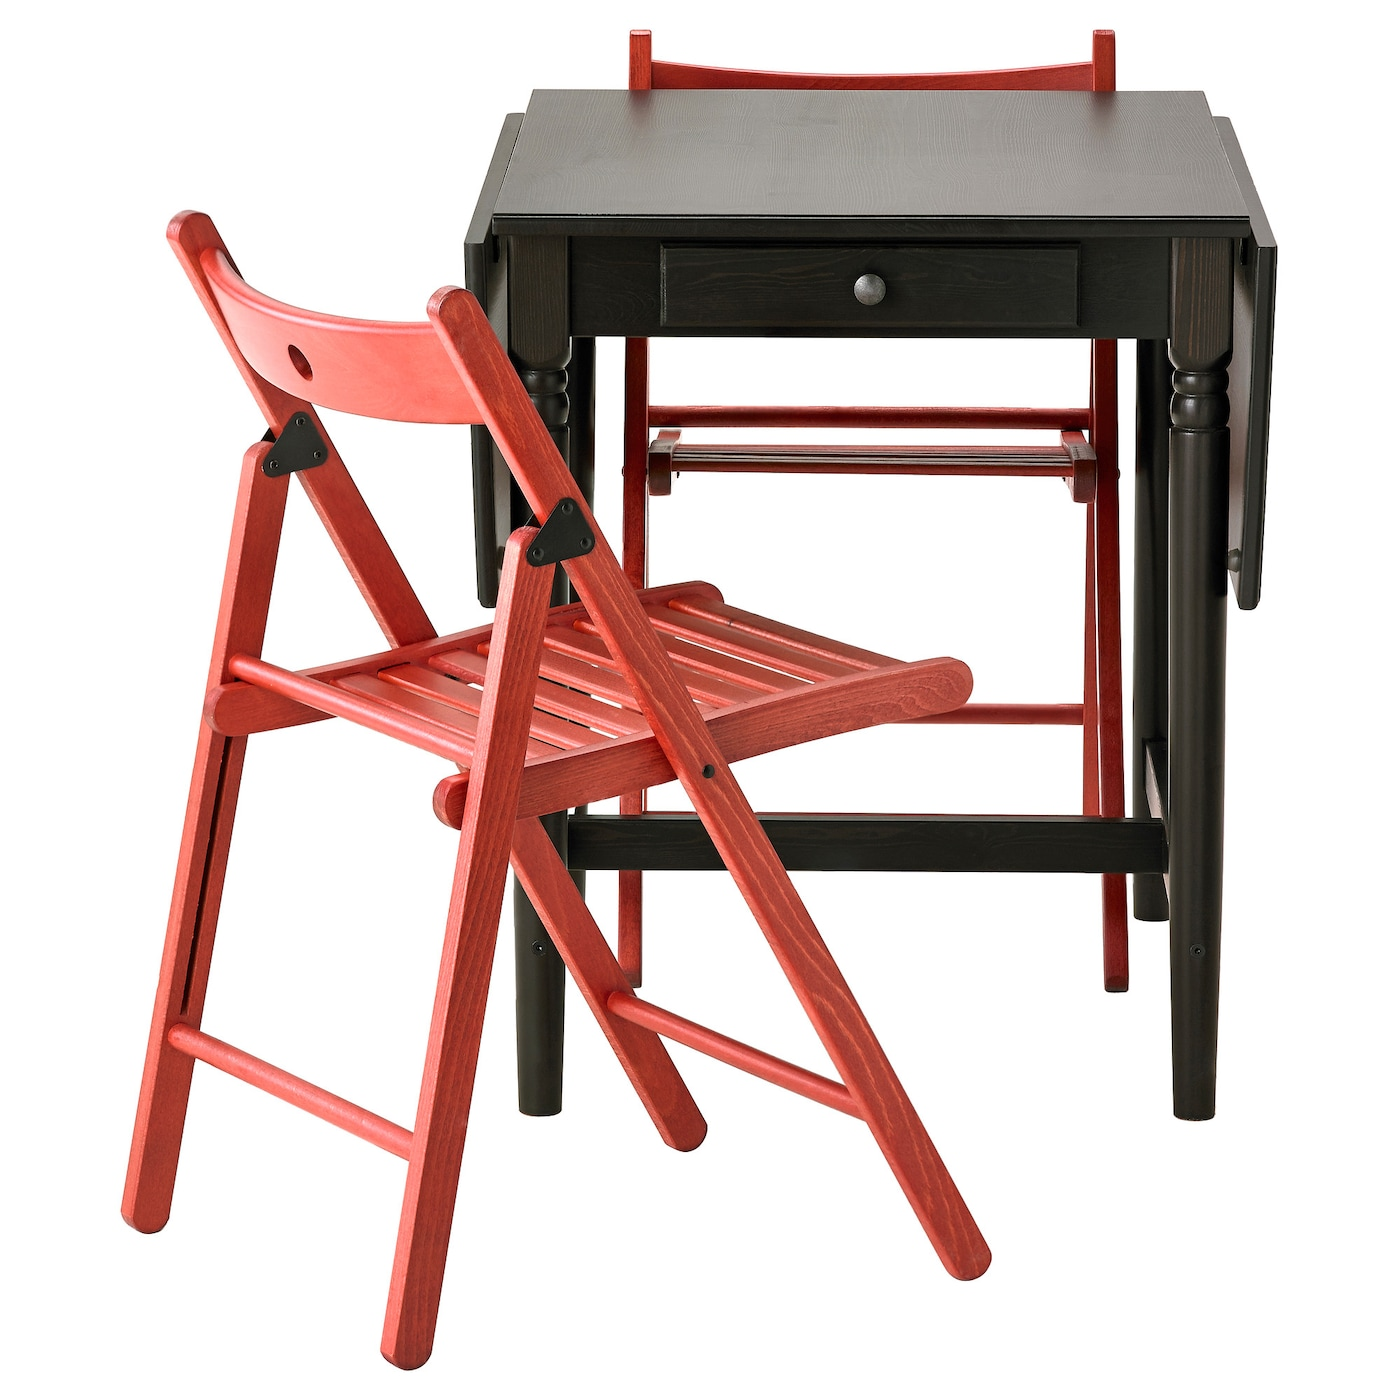 TERJE INGATORP Table and 2 chairs Black brown red 59 cm IKEA